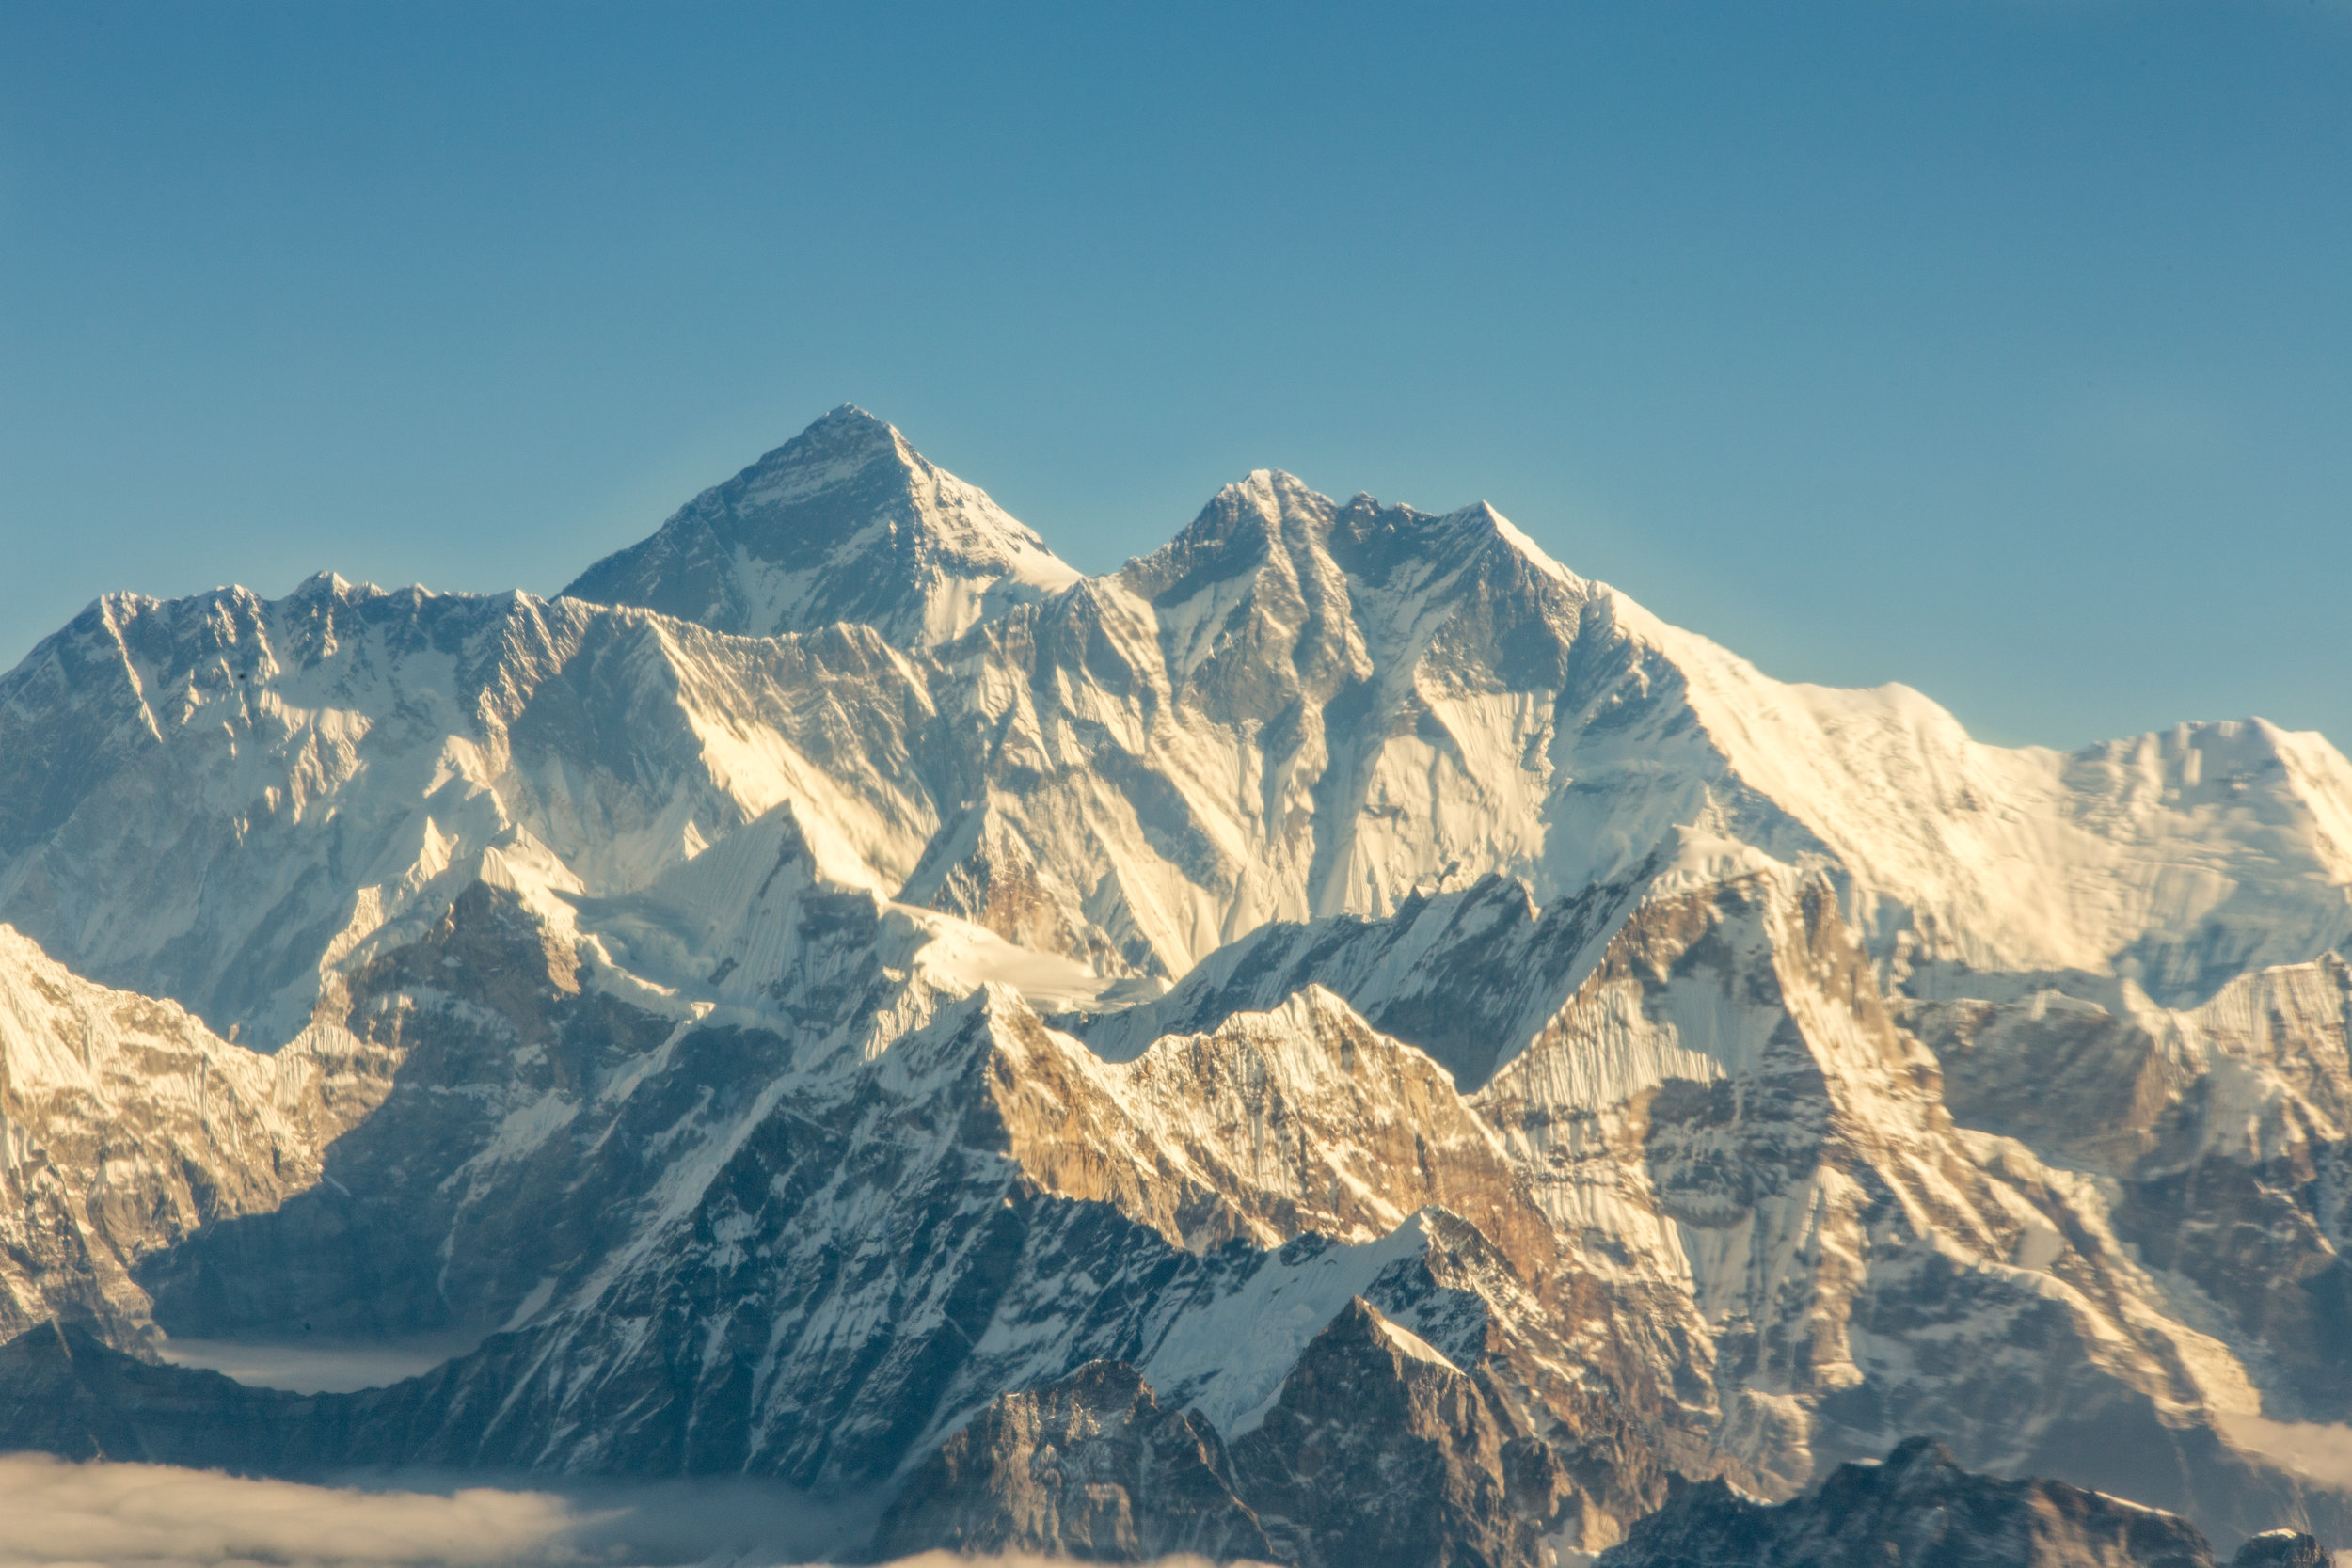 Yep- that's Everest! That super tall peak right there.